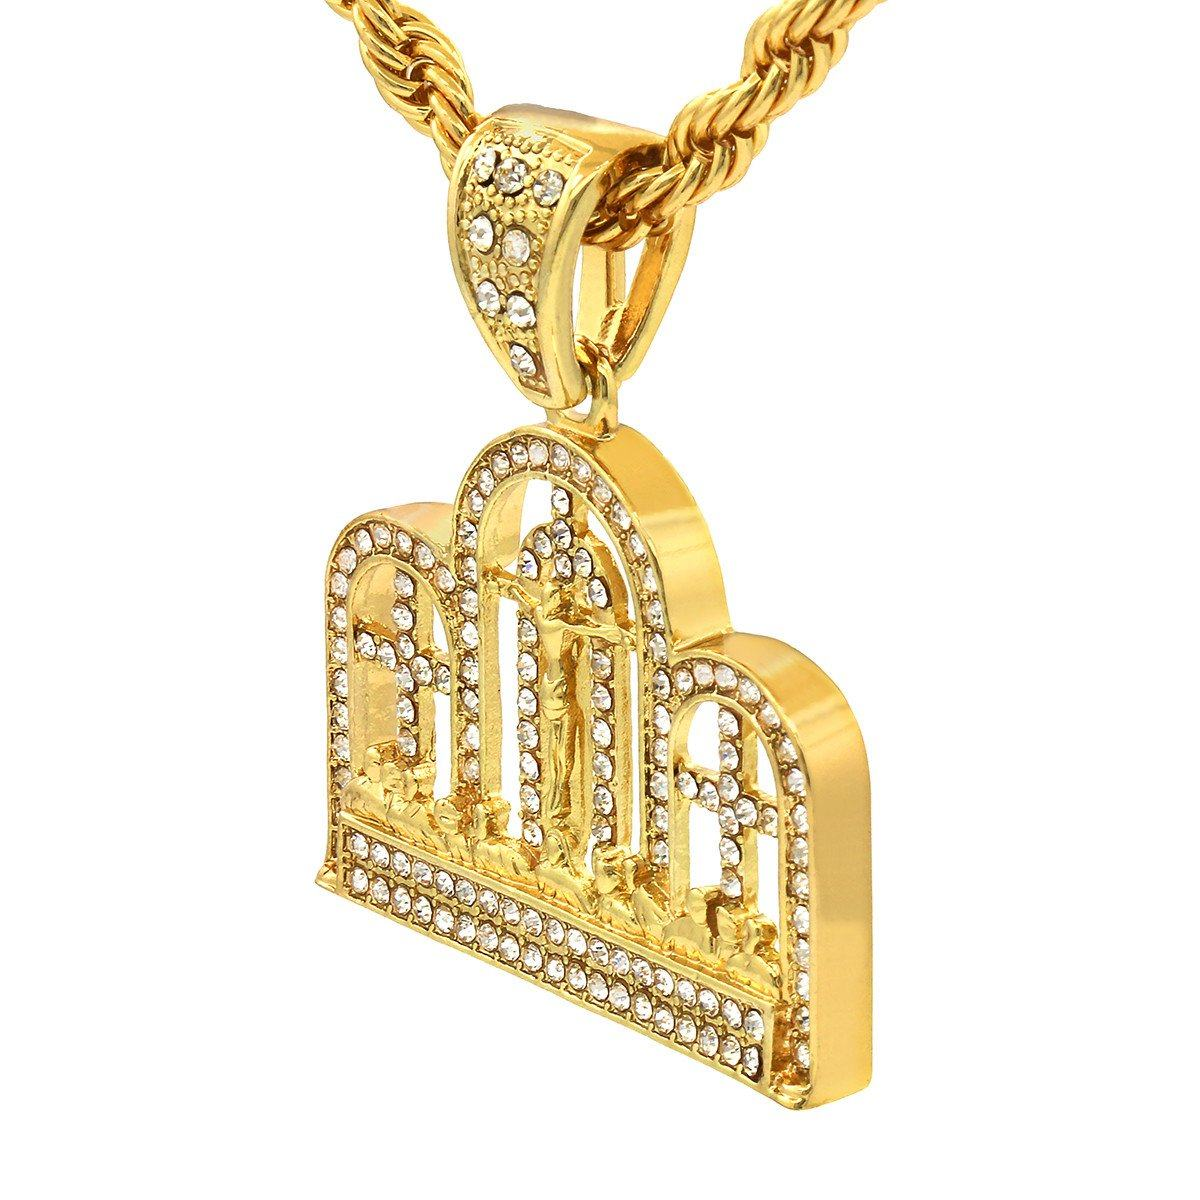 Gold Filled Last Supper Pendant with Rope Chain